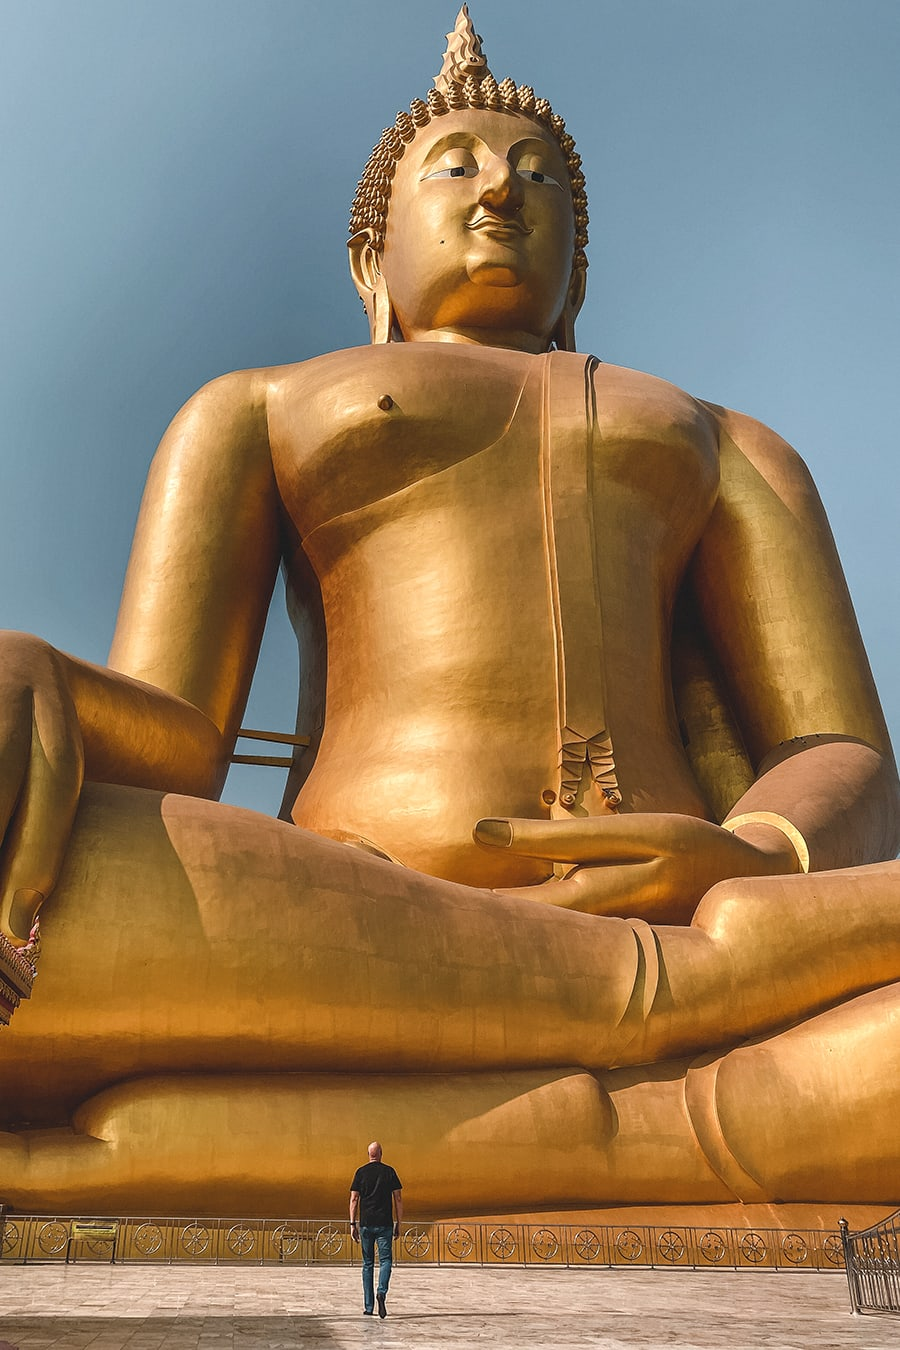 The Big Buddha of Ang Thong, the tallest statue in Thailand.